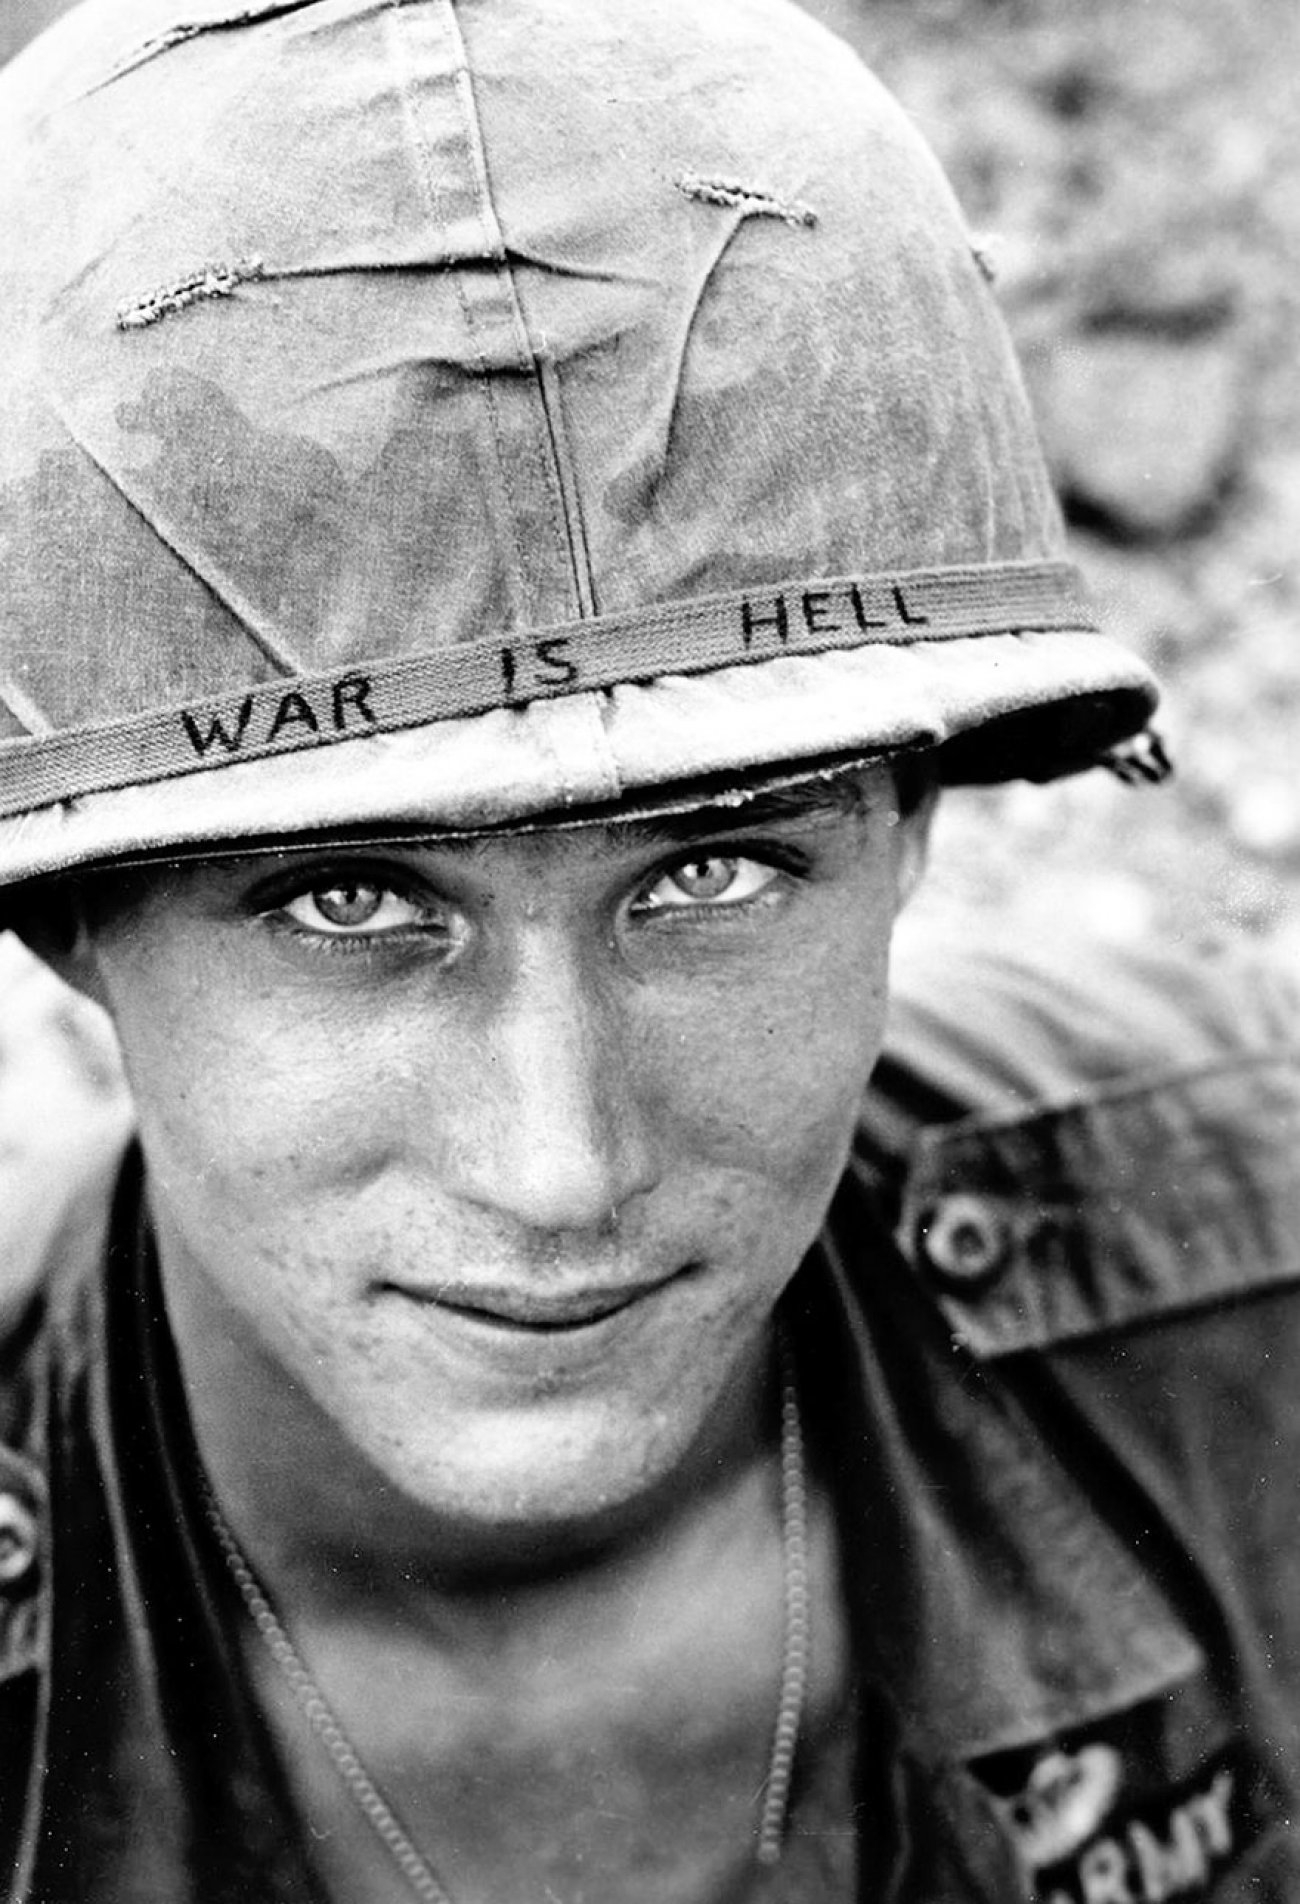 war-is-hell-arunknown-soldier-in-vietnam-1965